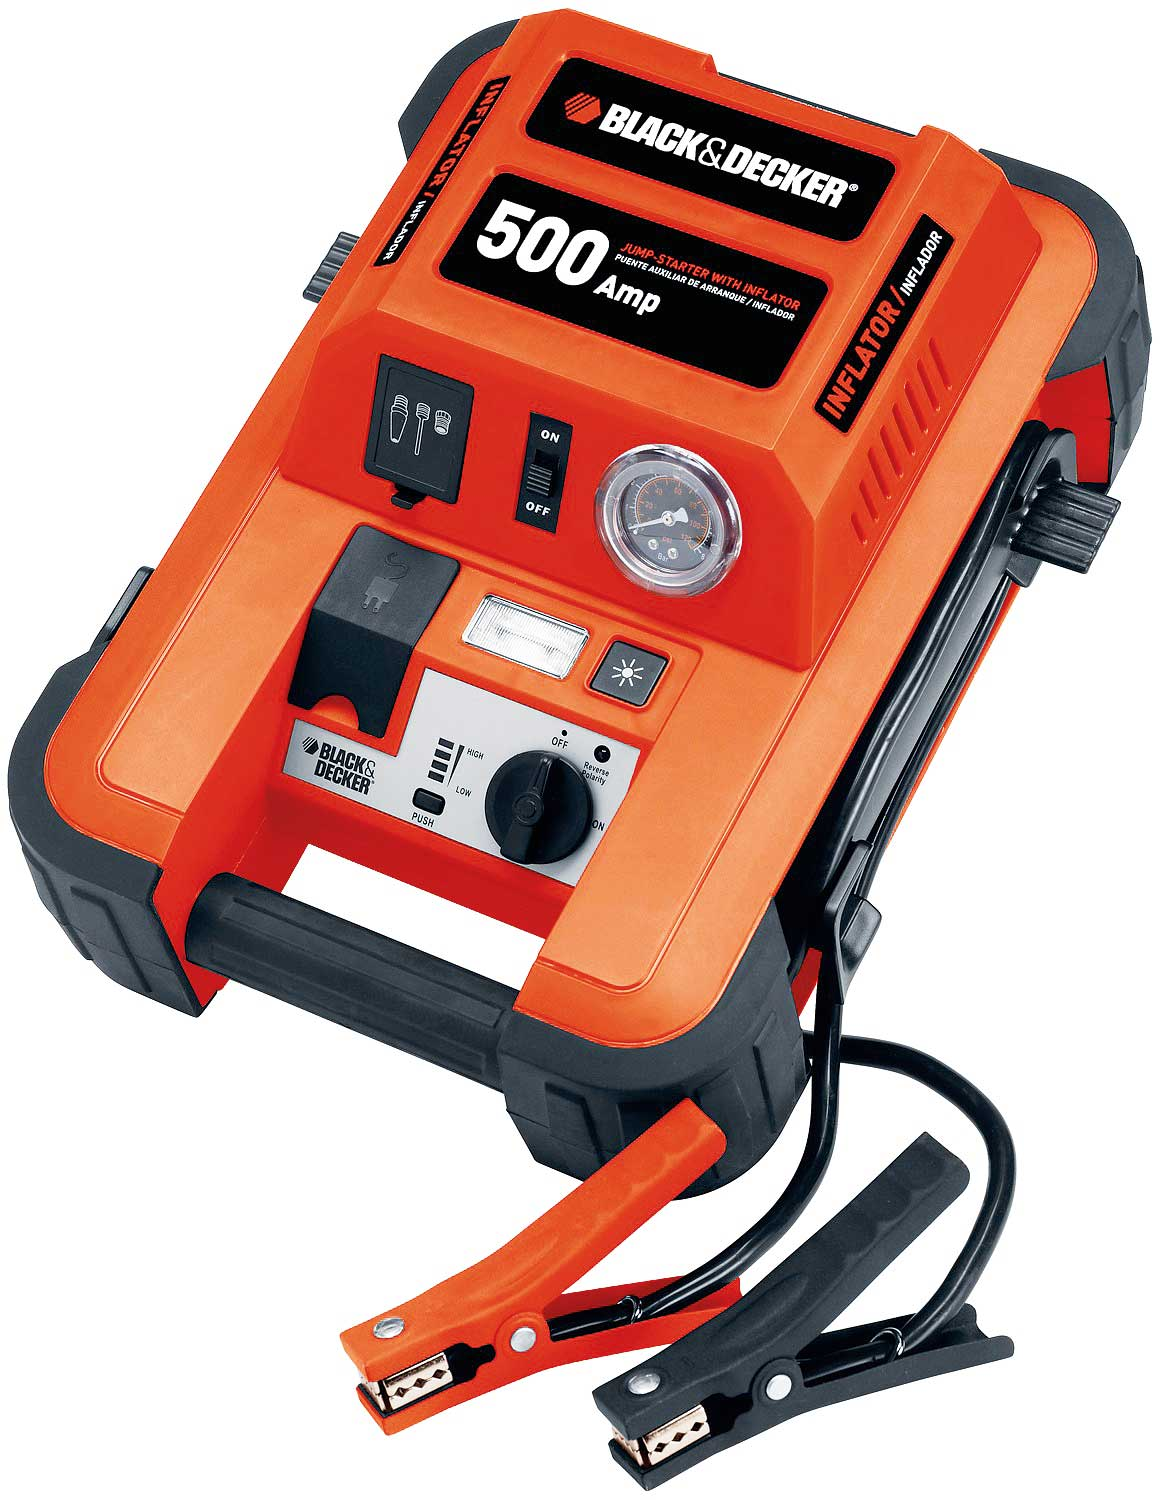 Black & Decker's Jump Starter: CPR for Your Rig